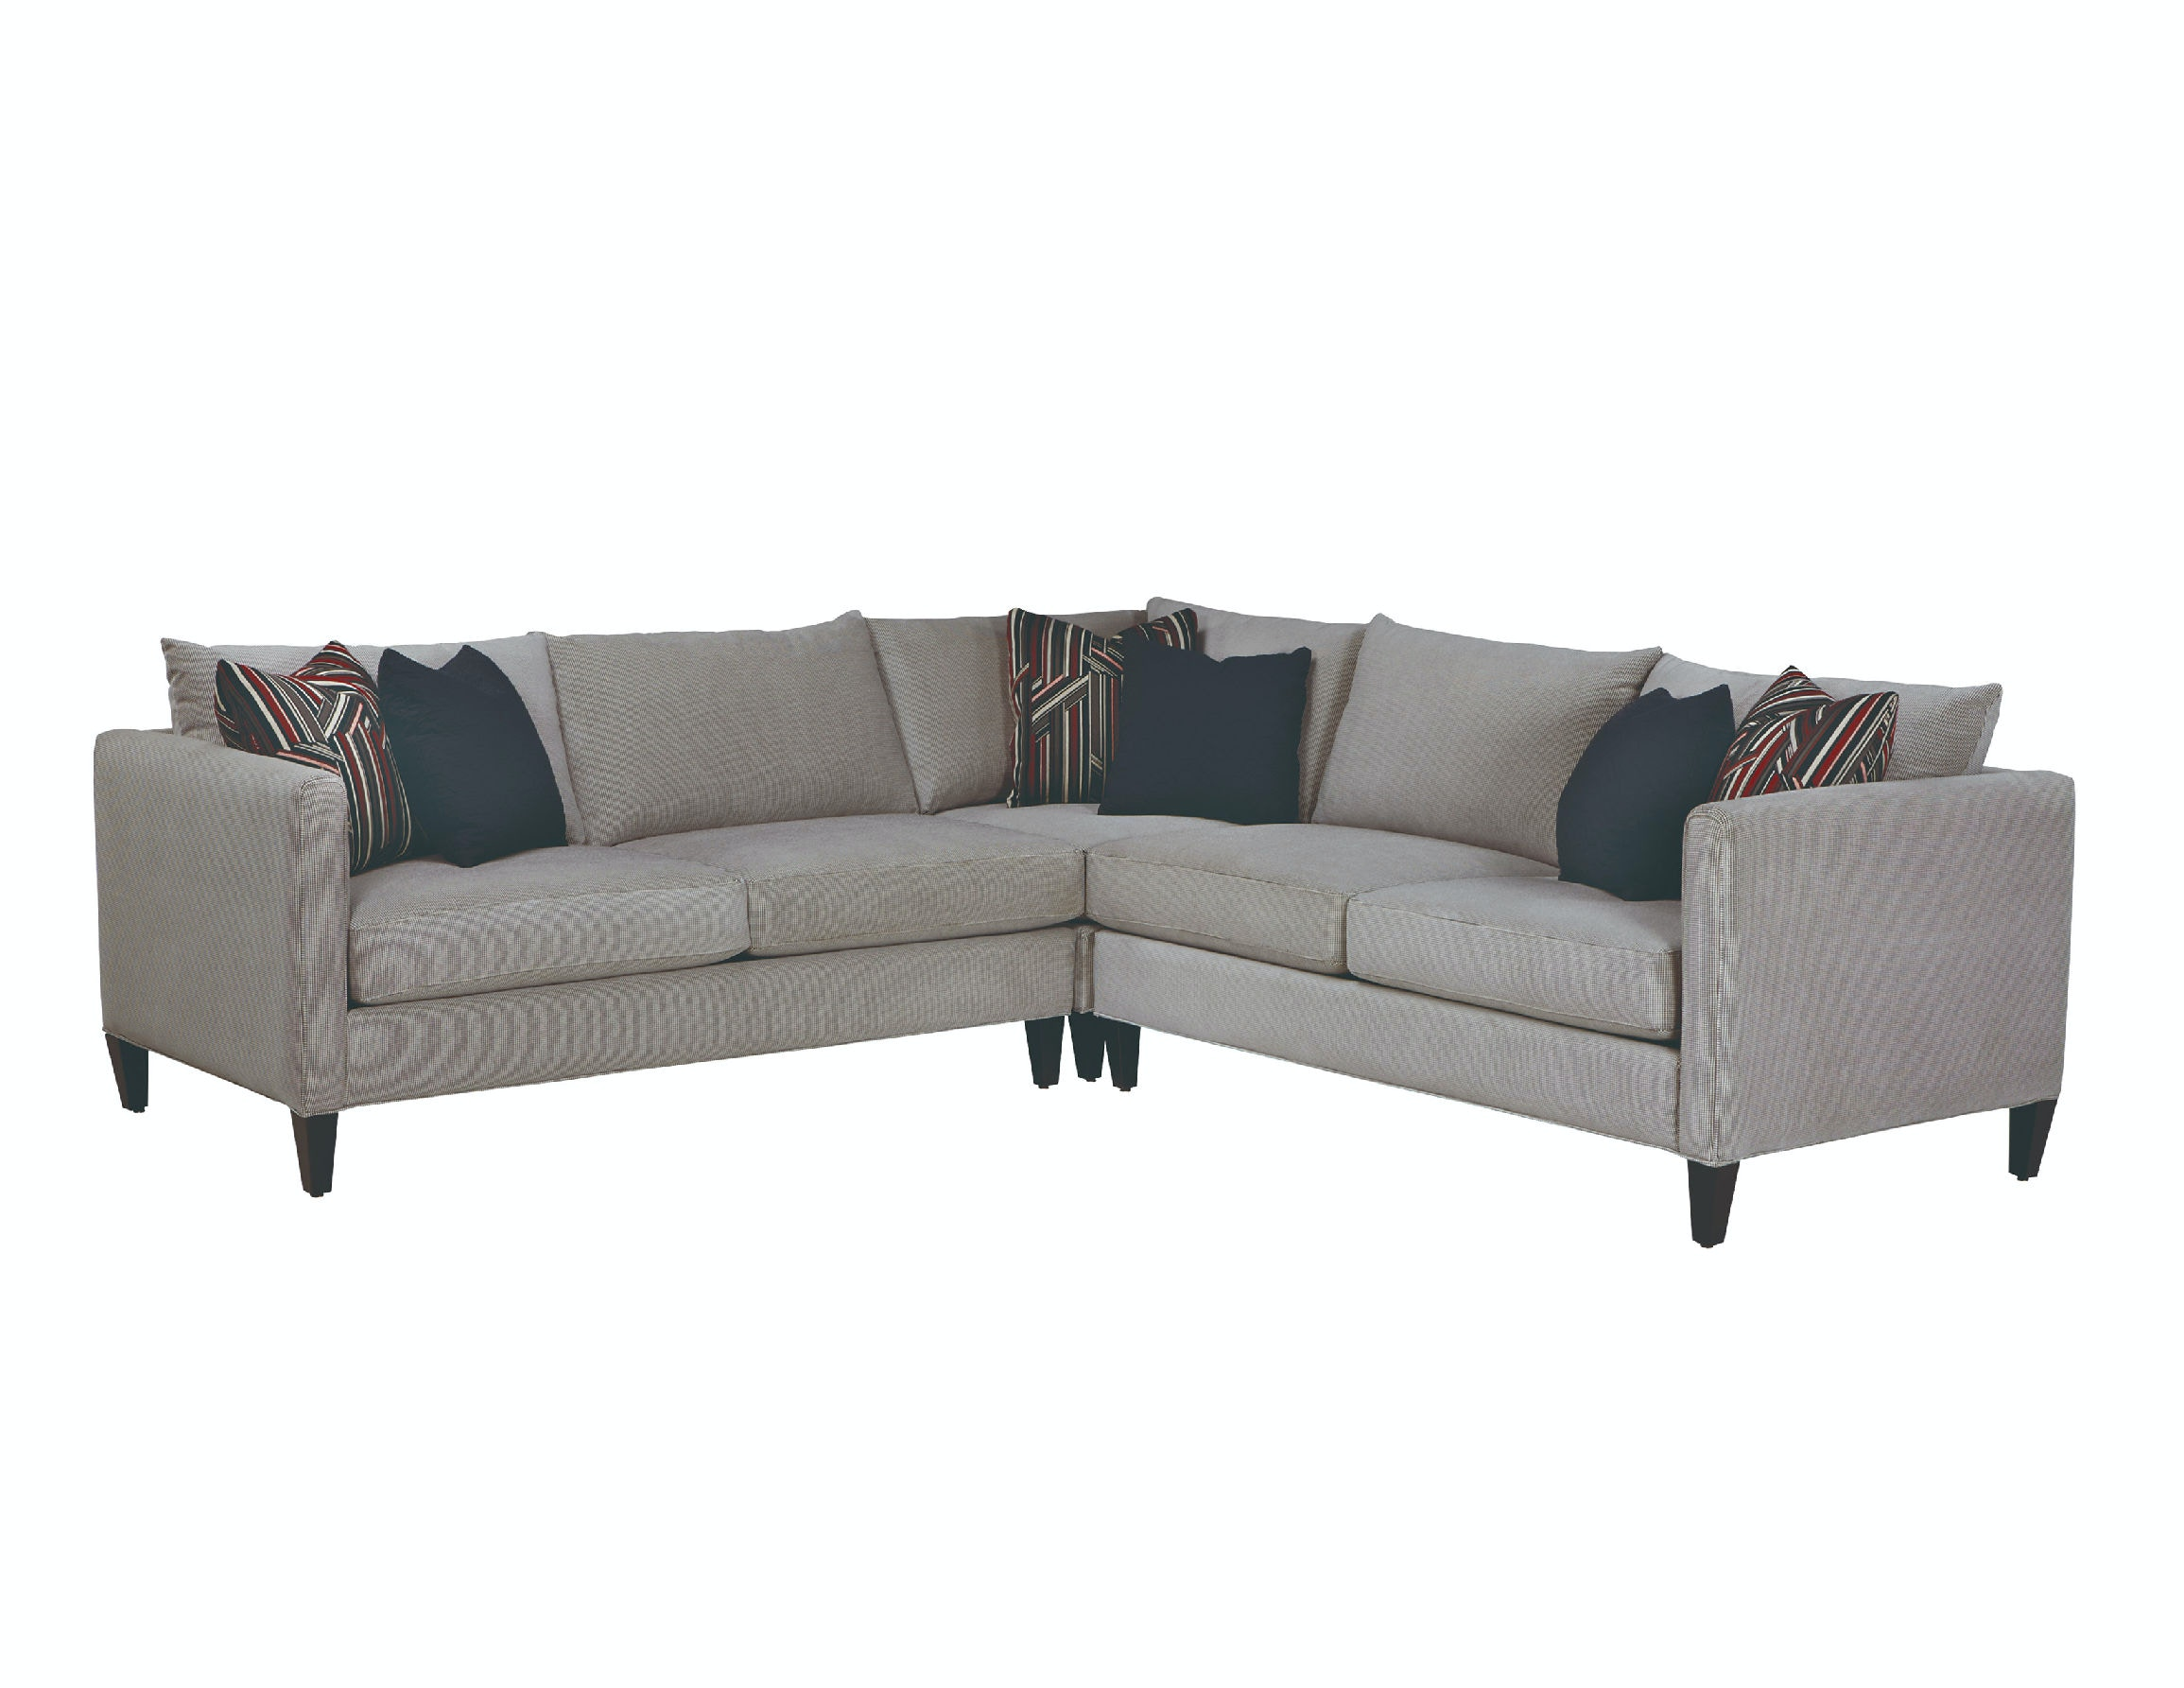 jonathan louis sofa bed how to clean white bonded leather international living room kate sectional